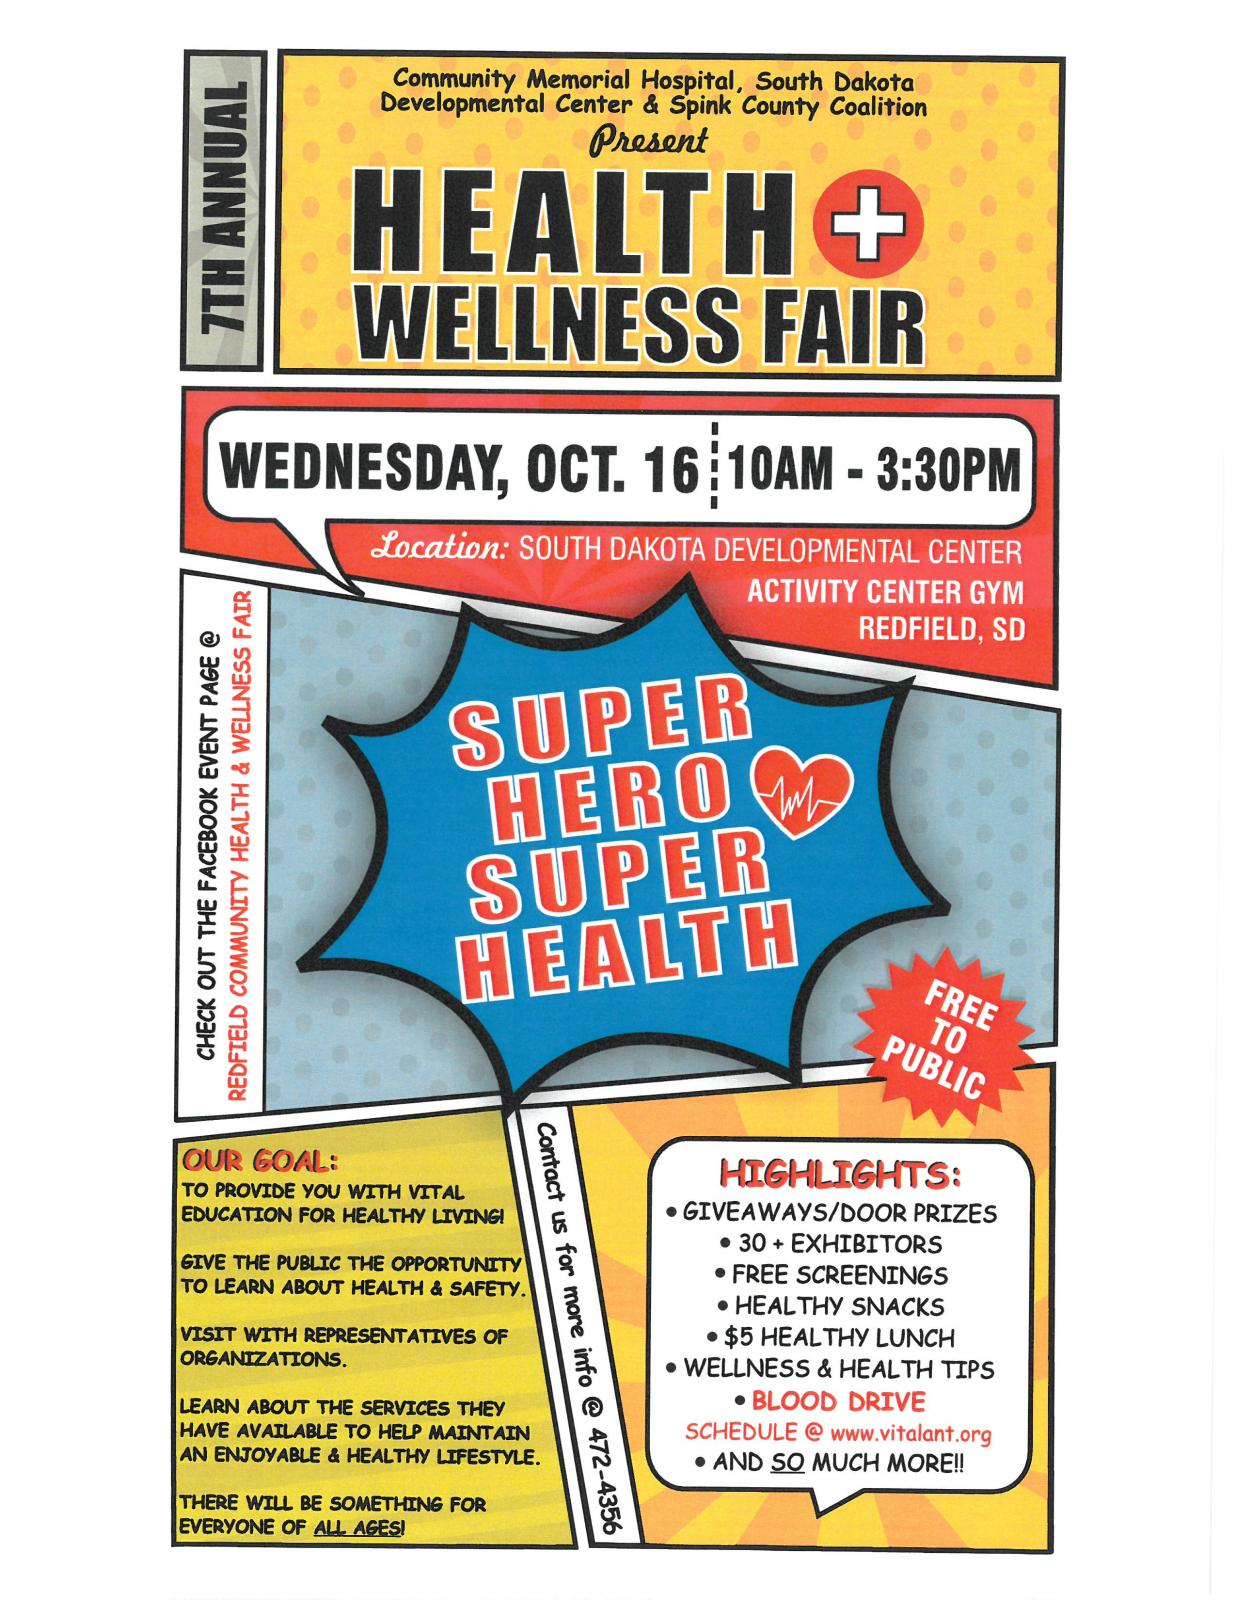 Event Promo Photo For 7th Annual Redfield Community Health and Wellness Fair